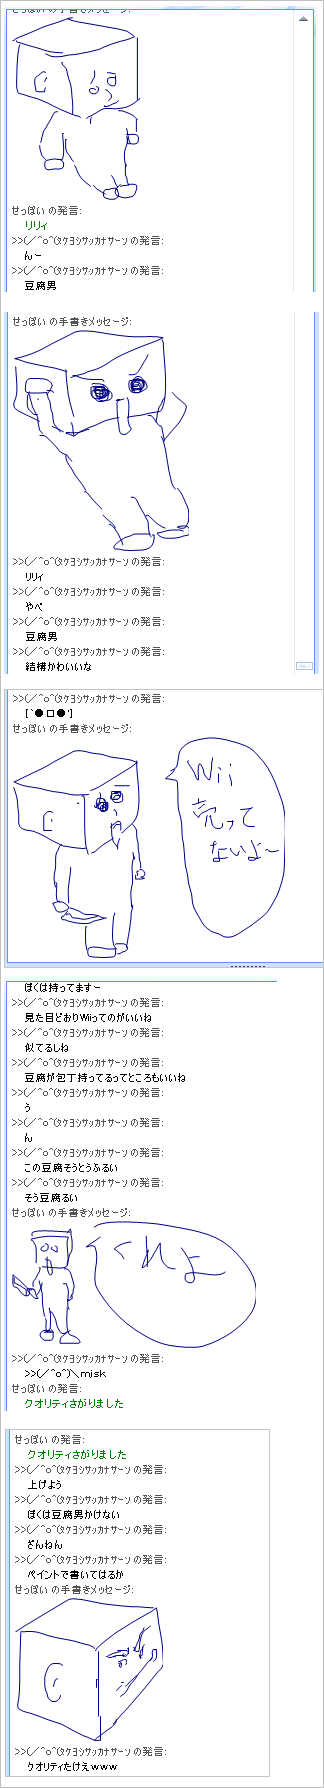 20070323_02.png